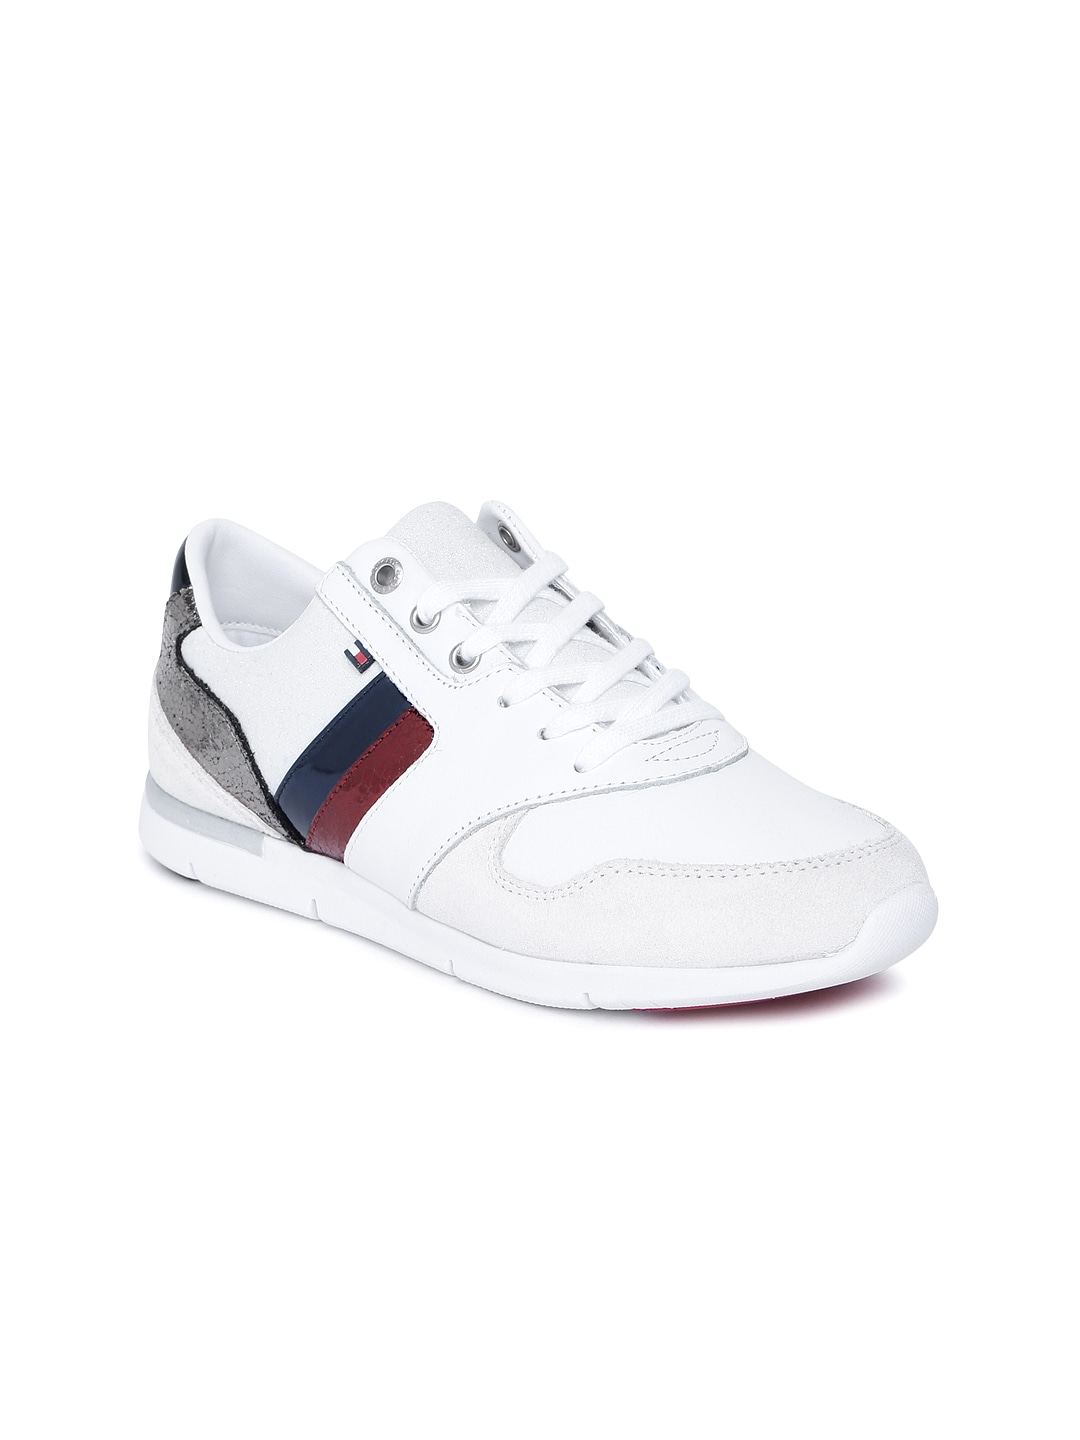 69fd4aa3f Women Tommy Hilfiger Footwear - Buy Women Tommy Hilfiger Footwear online in  India